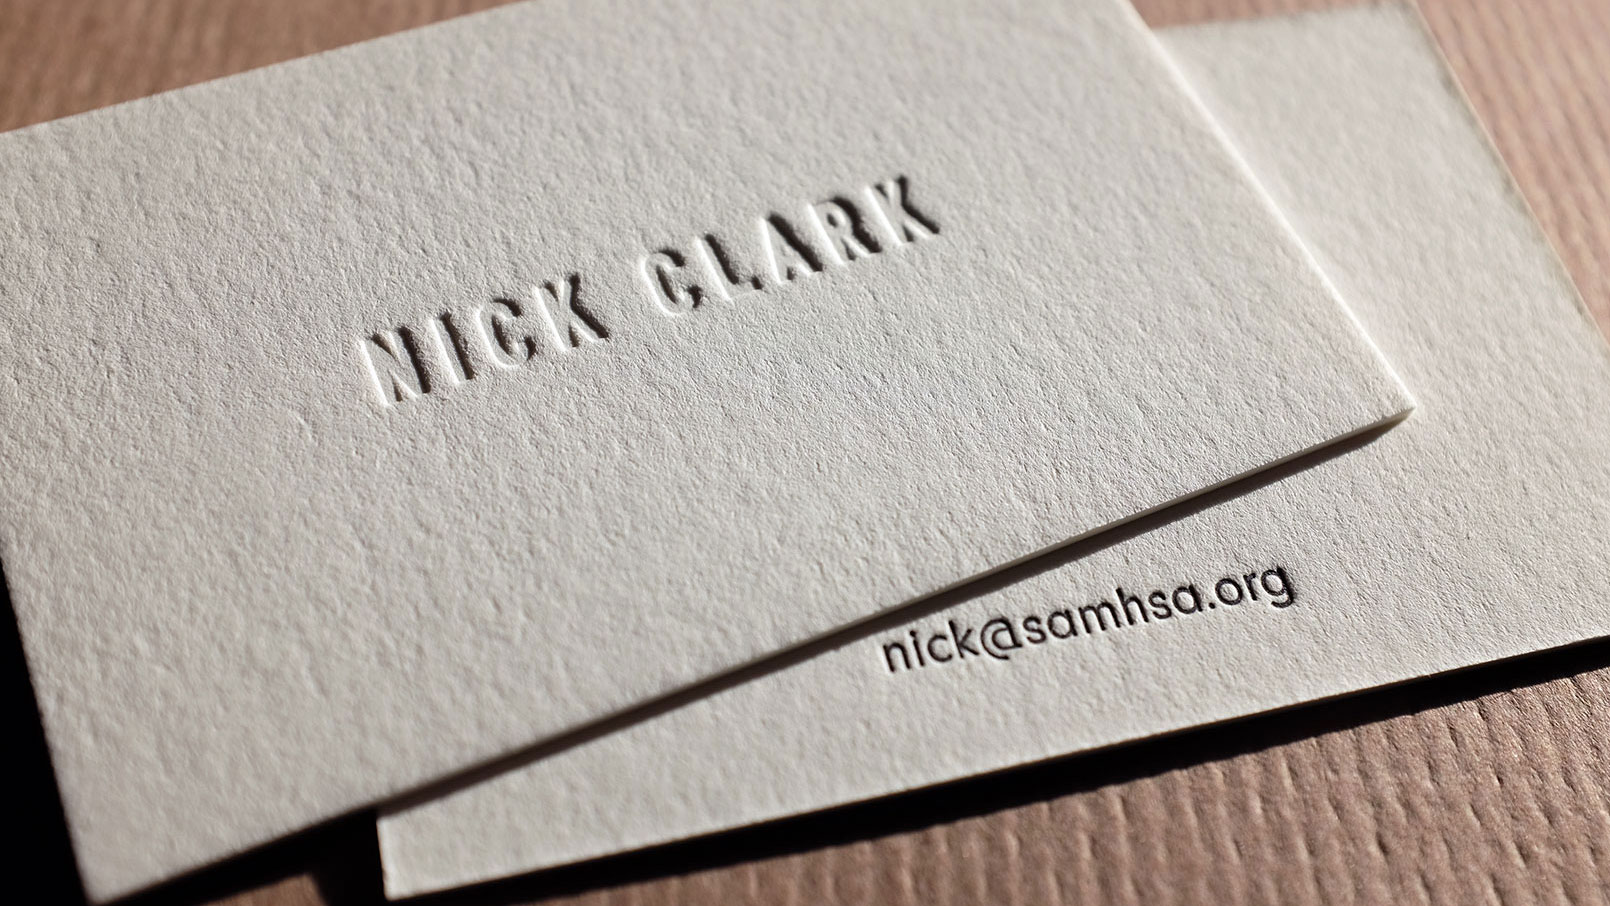 Business cards pritning nyc printing near me bestofprinting letterpress ultra thick business card printing long island colourmoves